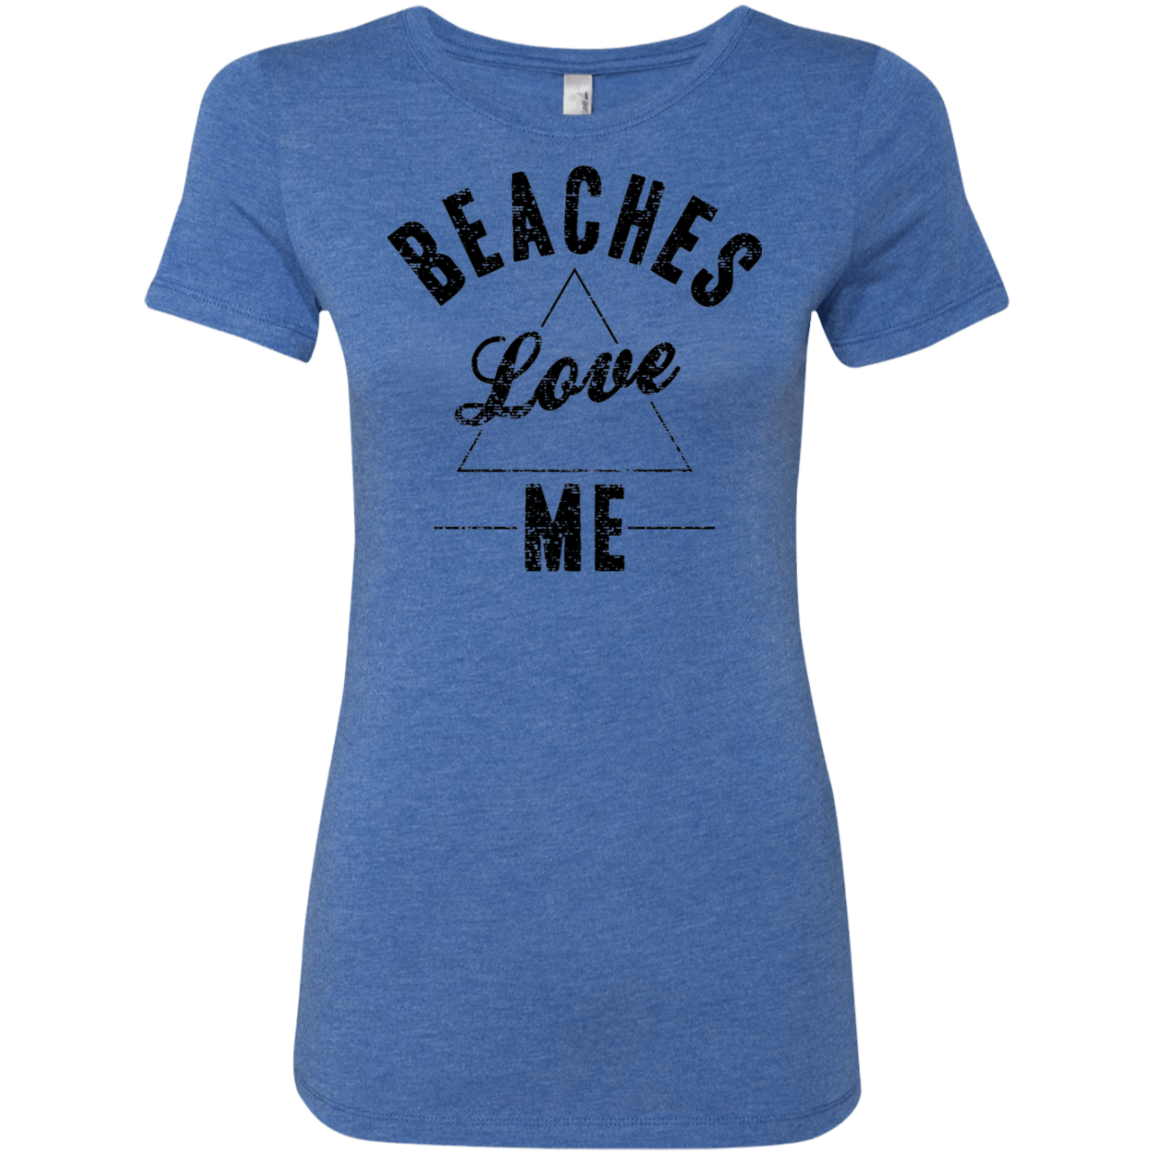 Beaches Love Me Women's Classic Tee - Trendy Tees